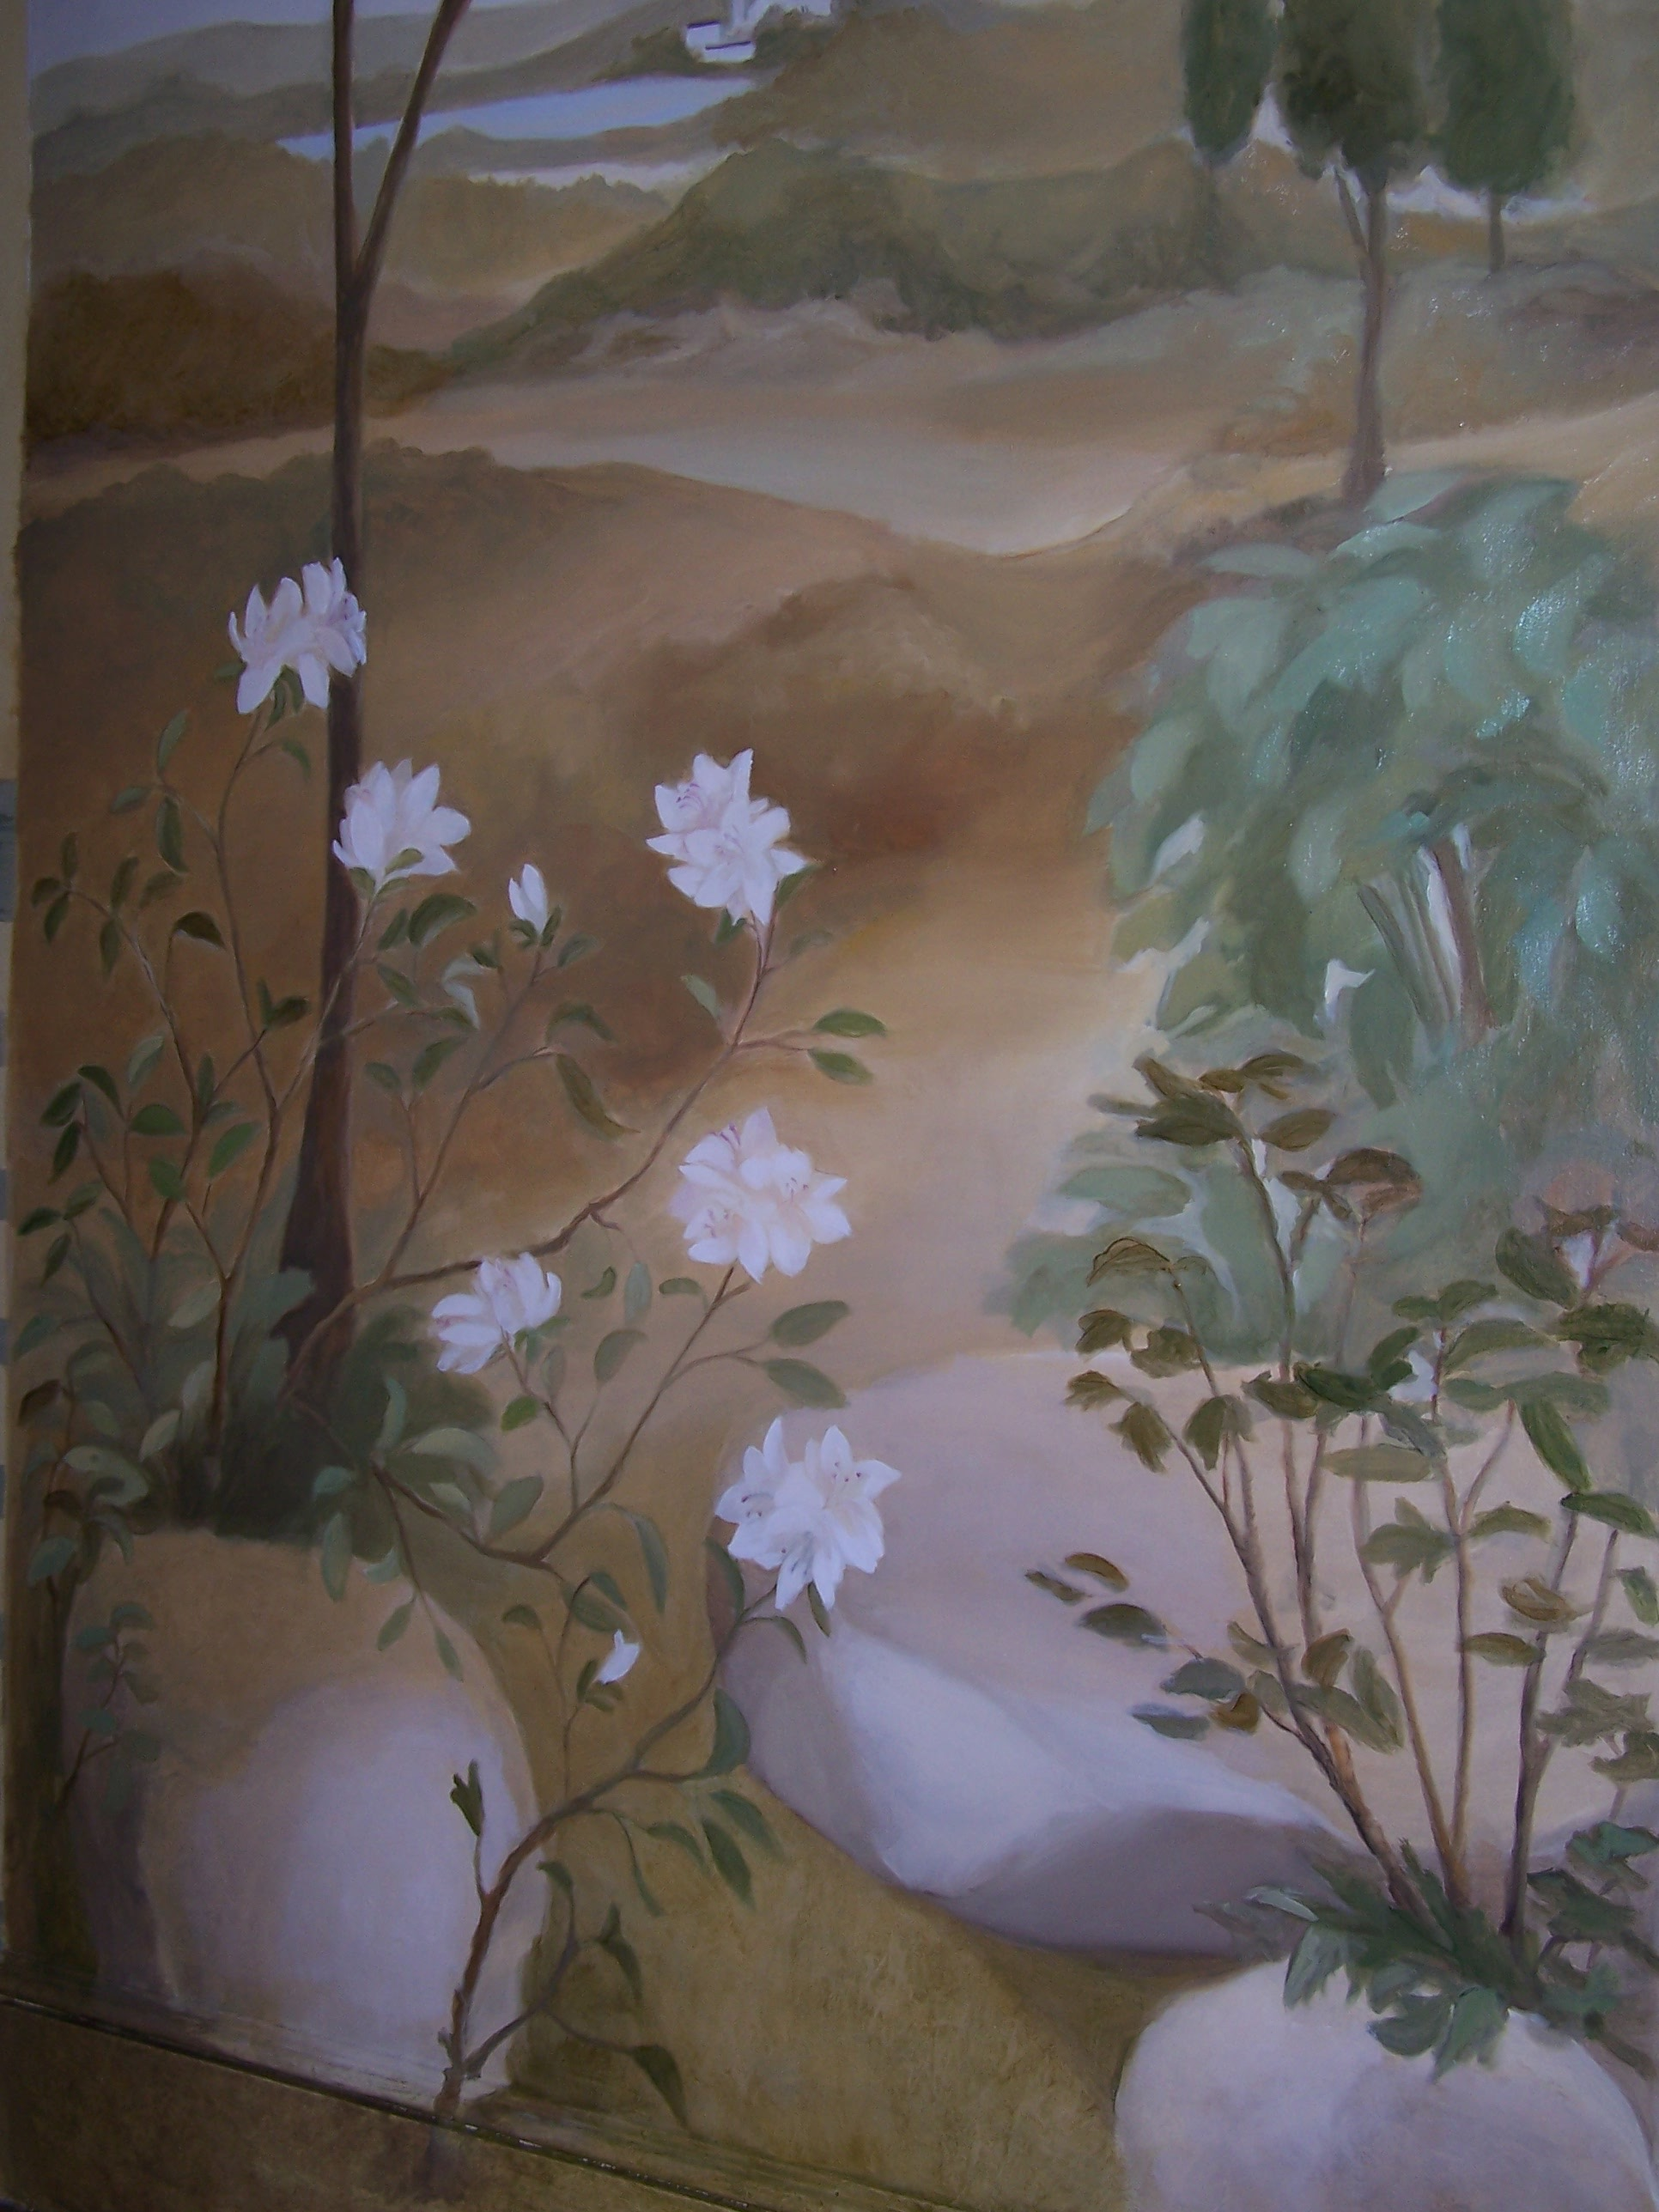 Dining room mural - detail of the garden scene